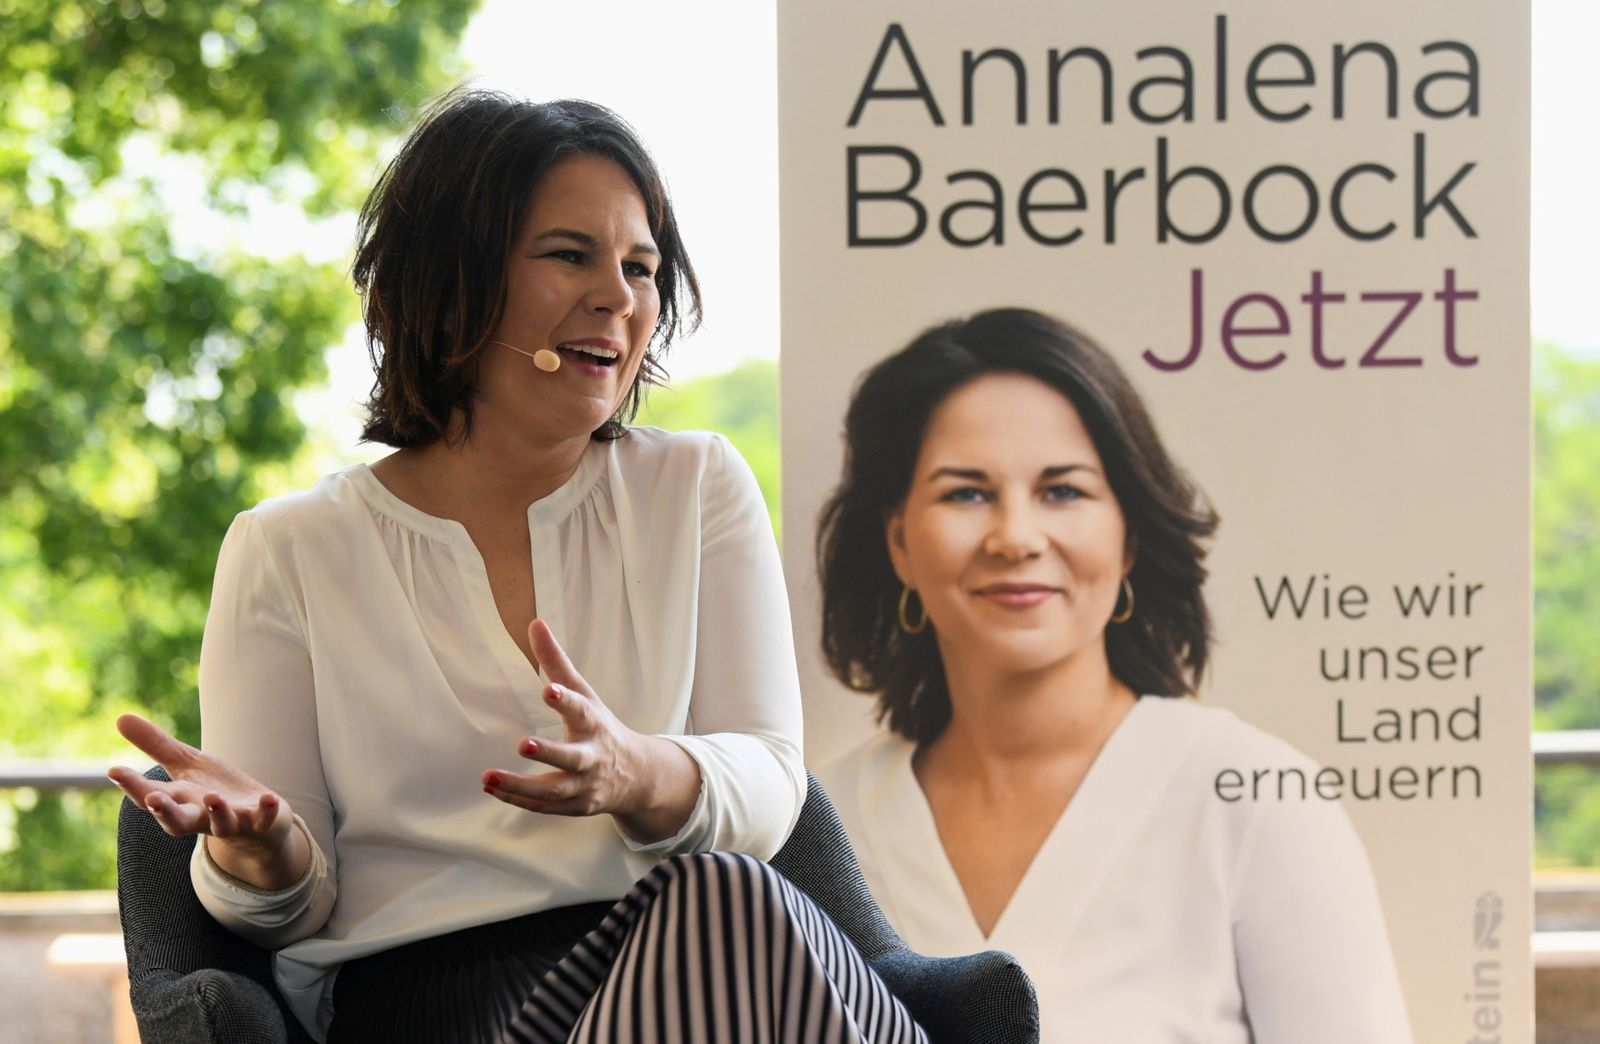 """FILE PHOTO: Germany's Green party candidate for chancellor Baerbock presents her book """"Jetzt: Wie wir unser Land erneuern\"""